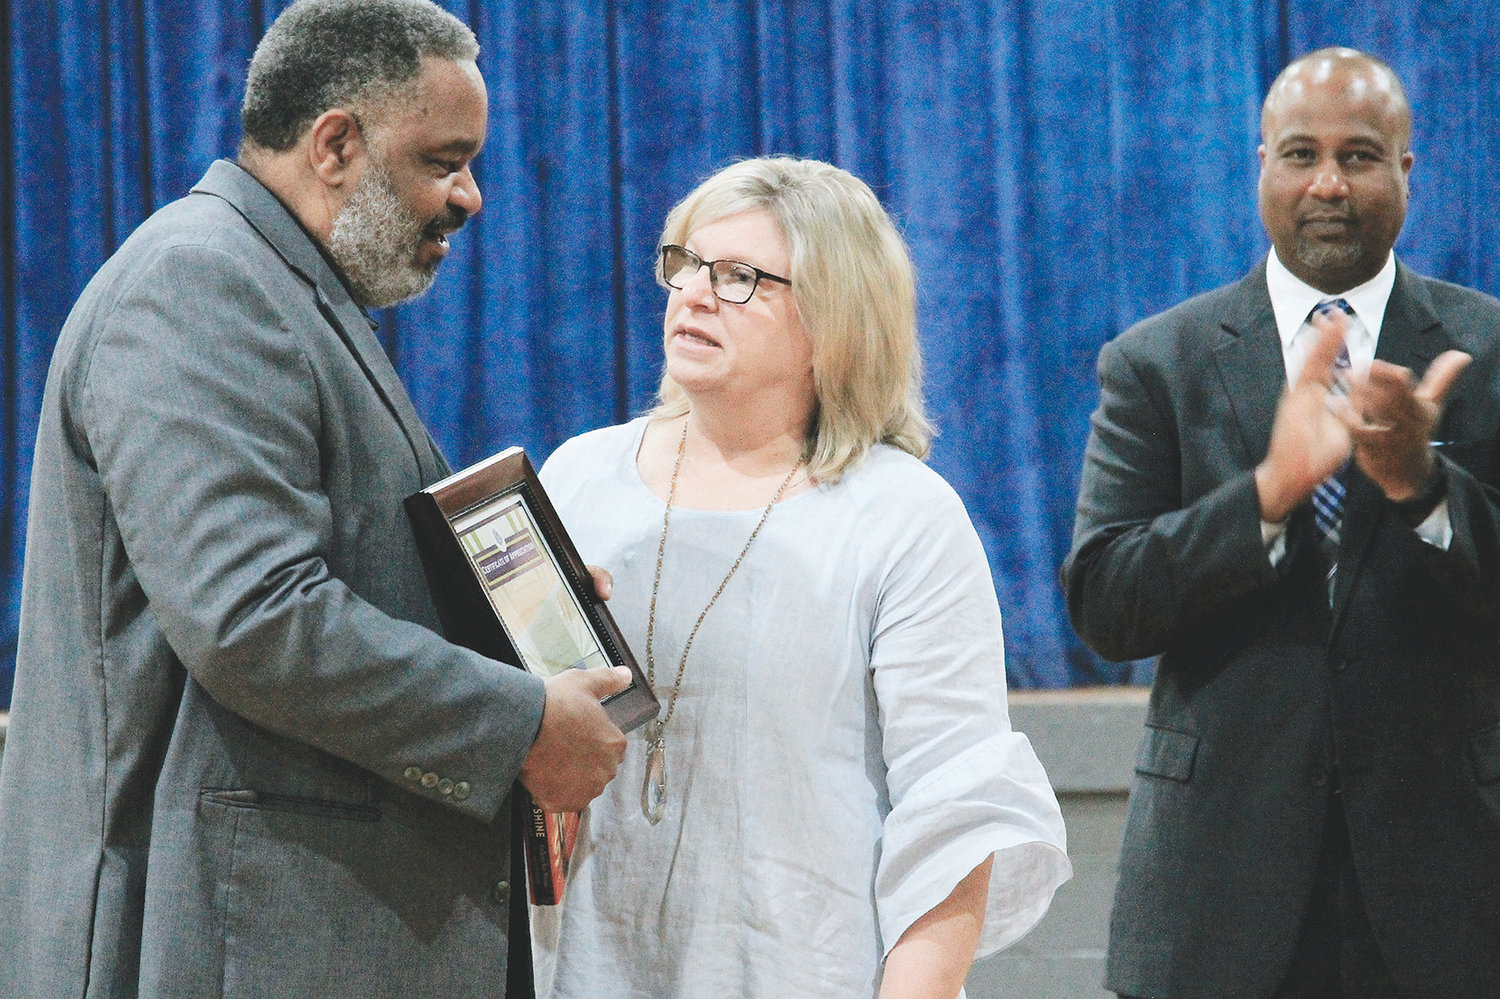 Dora Principal Paige Abner presents a certificate of appreciation to Anthony Ray Hinton on Wednesday after his presentation about spending 30 years on death row.